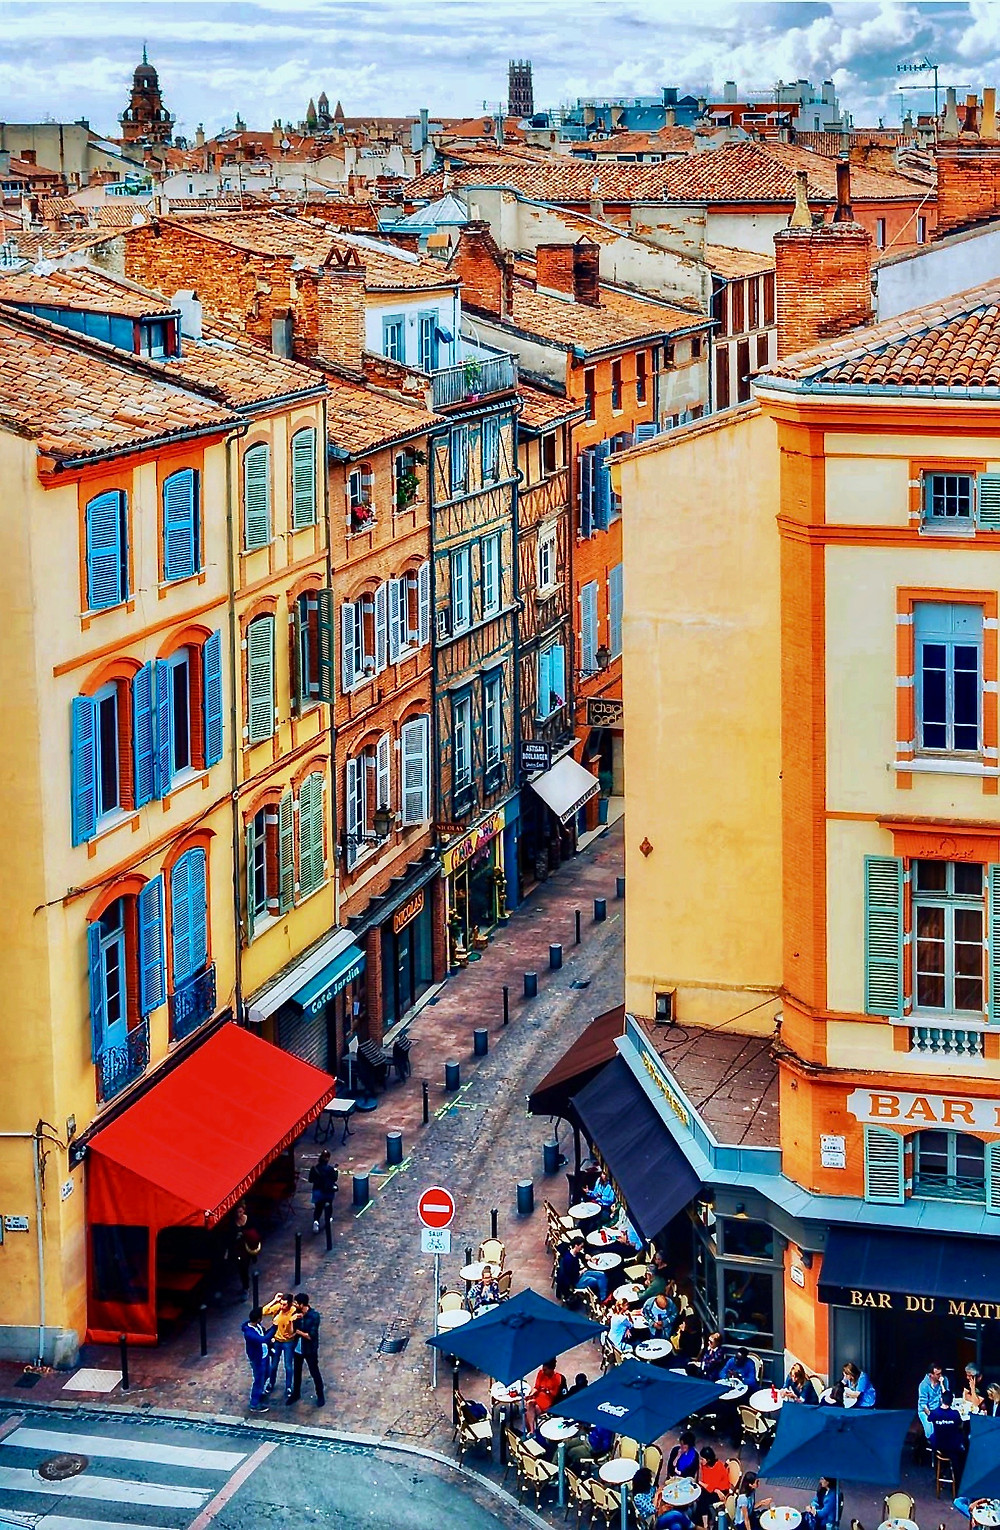 the Carmes neighborhood of Toulouse France